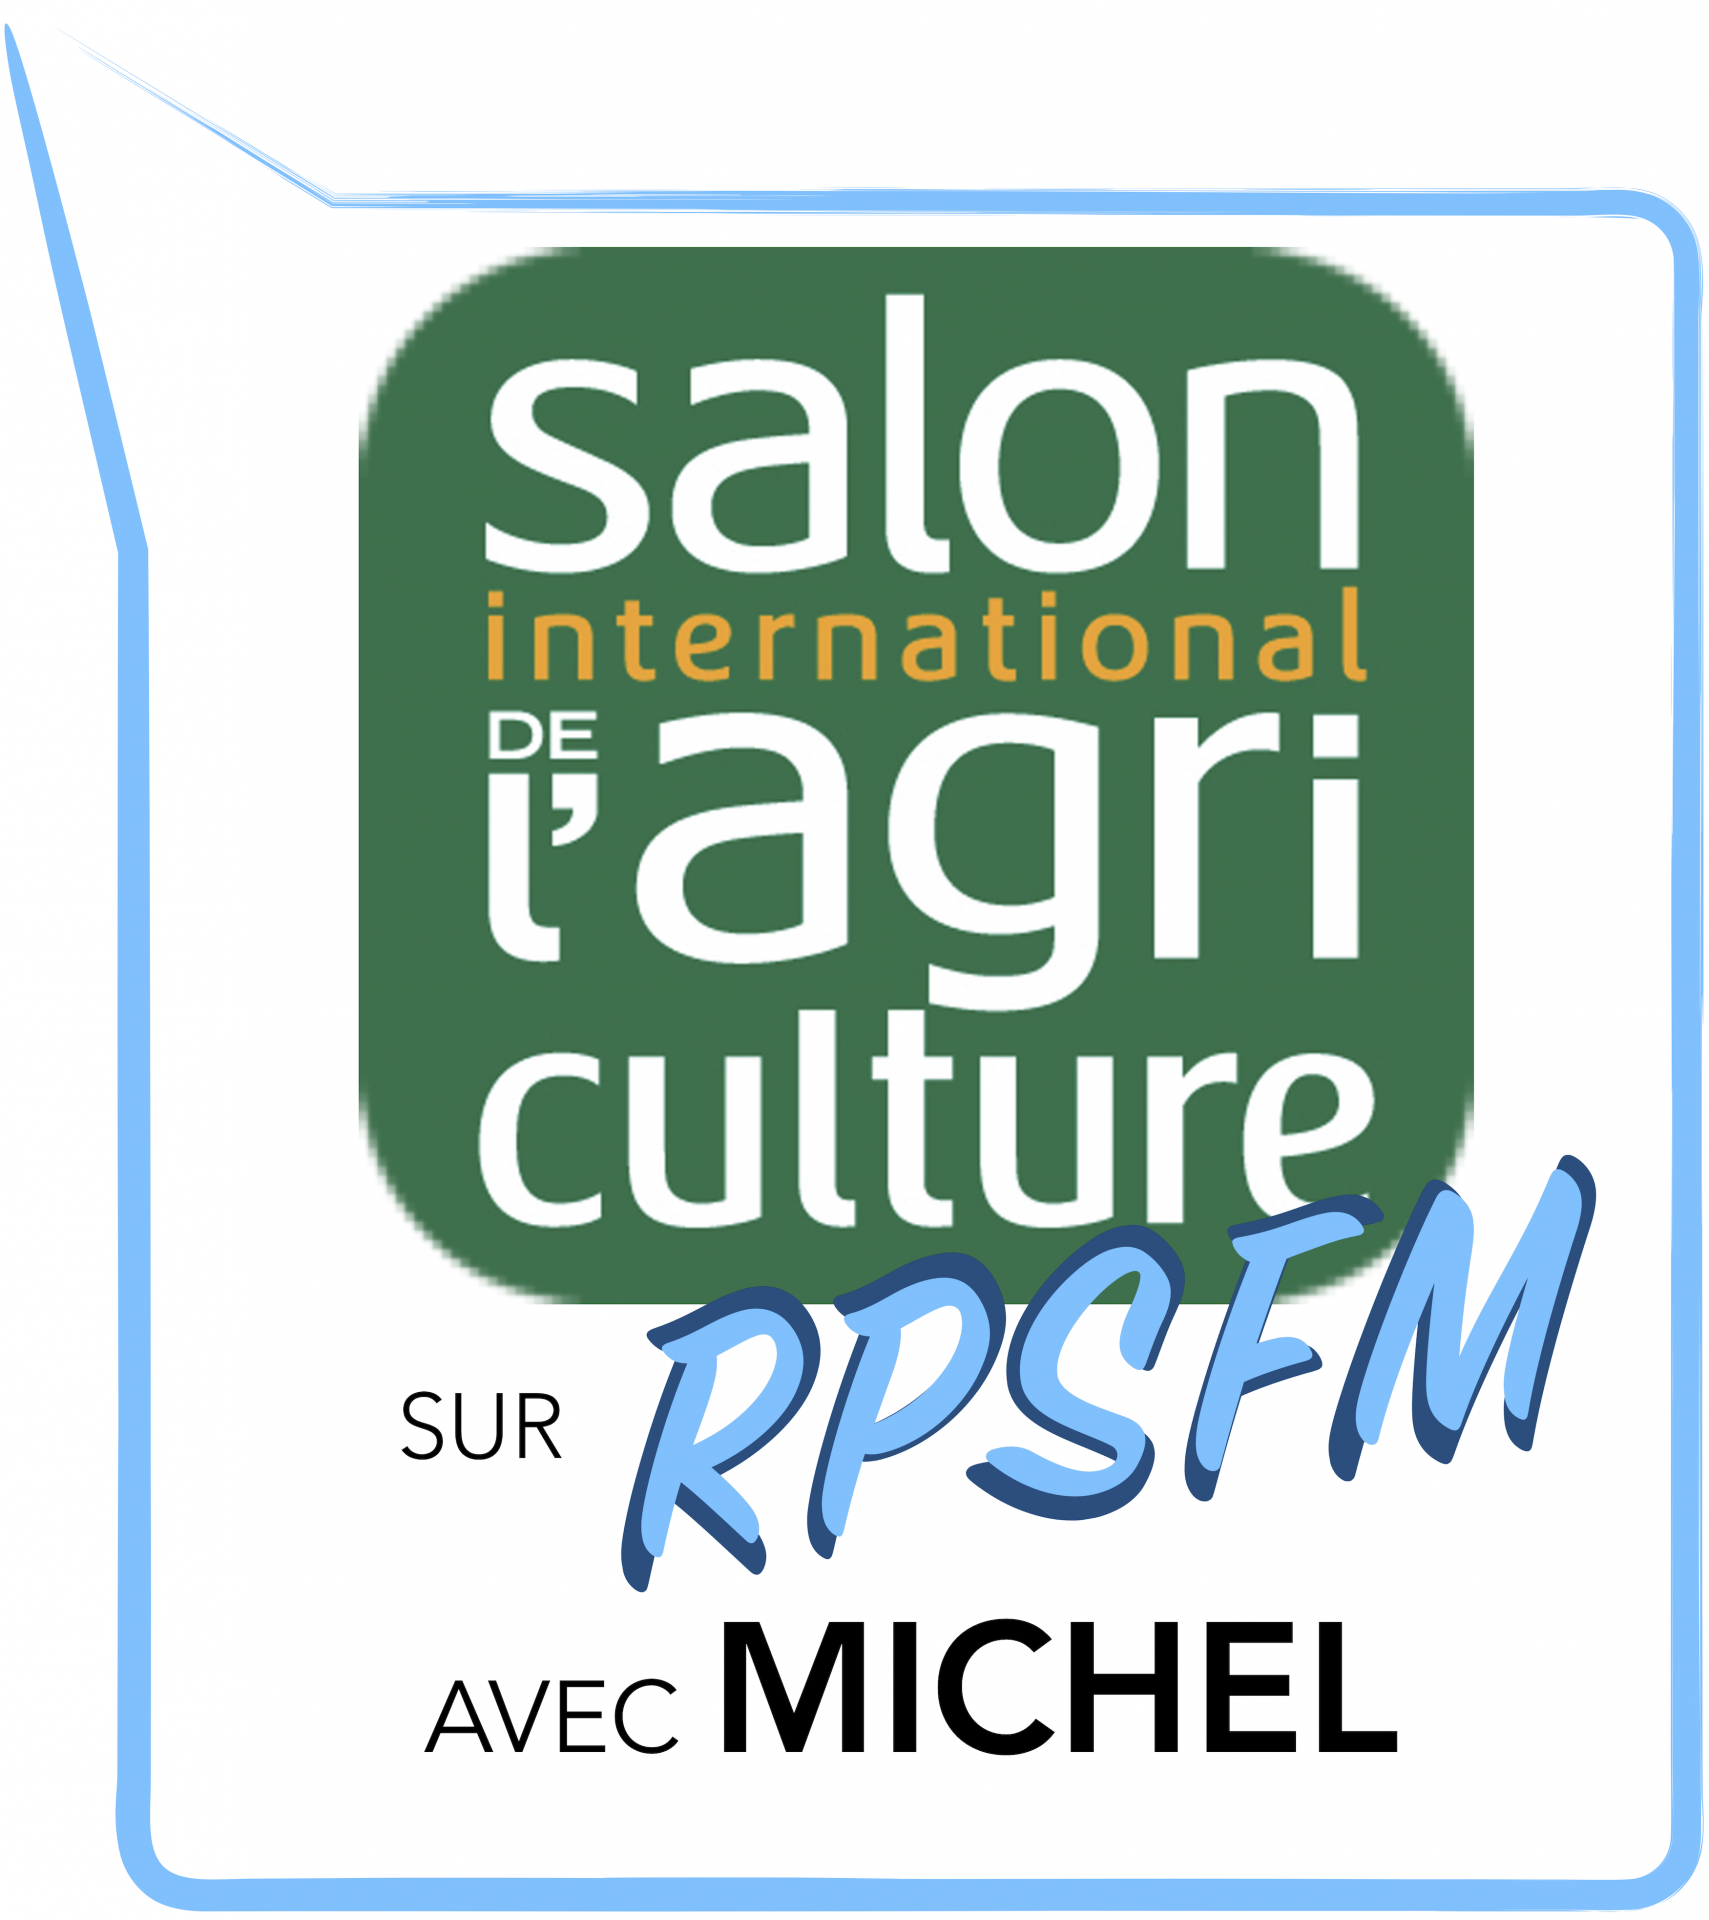 Salon International de l'Agriculture 2019 avec Michel